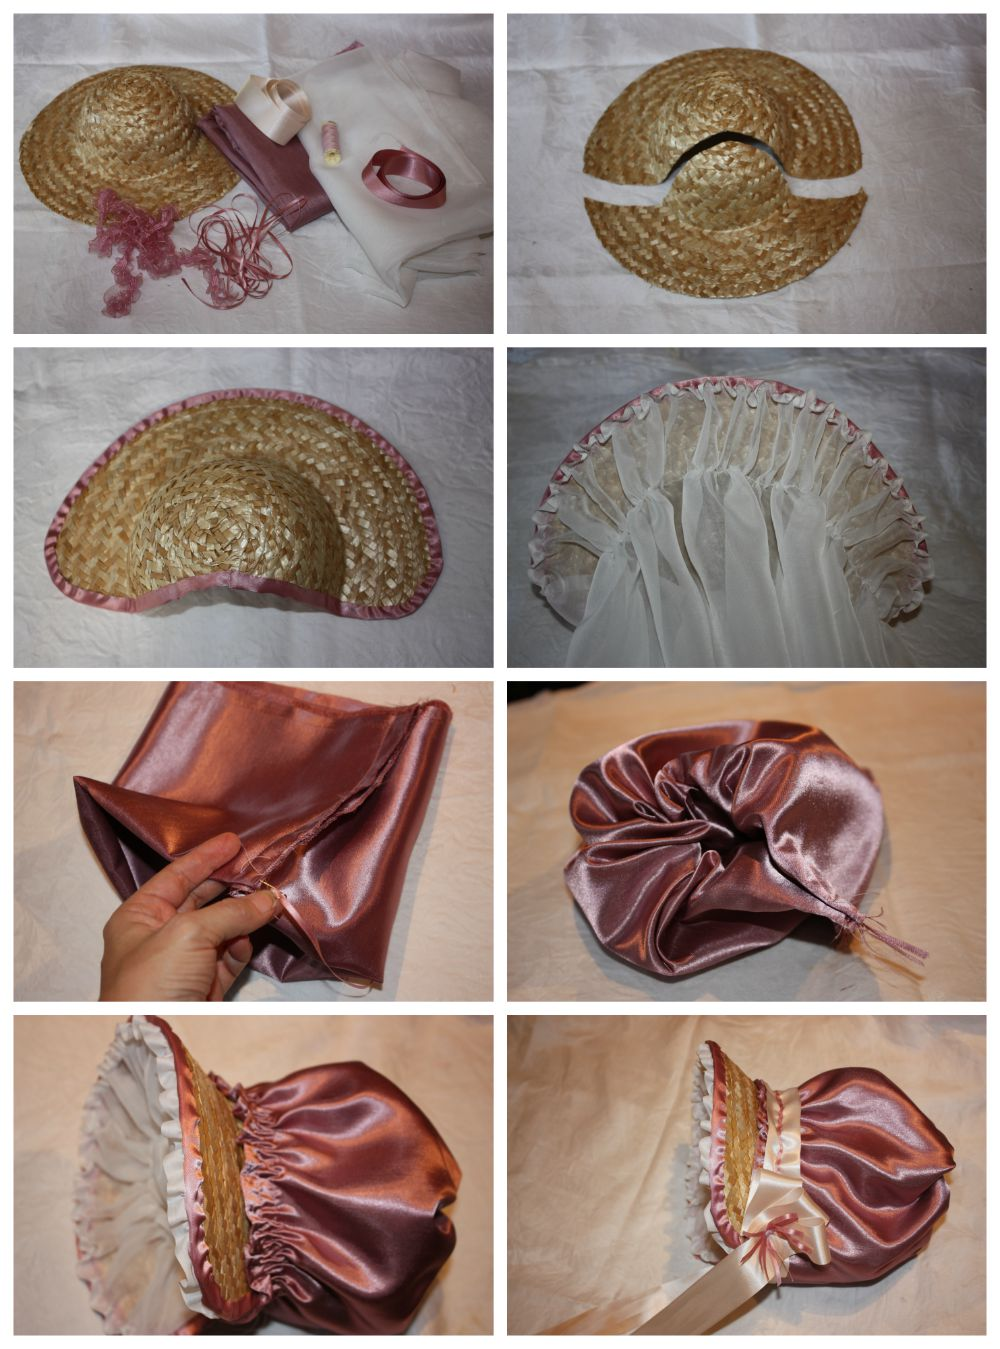 How to make a poke bonnet